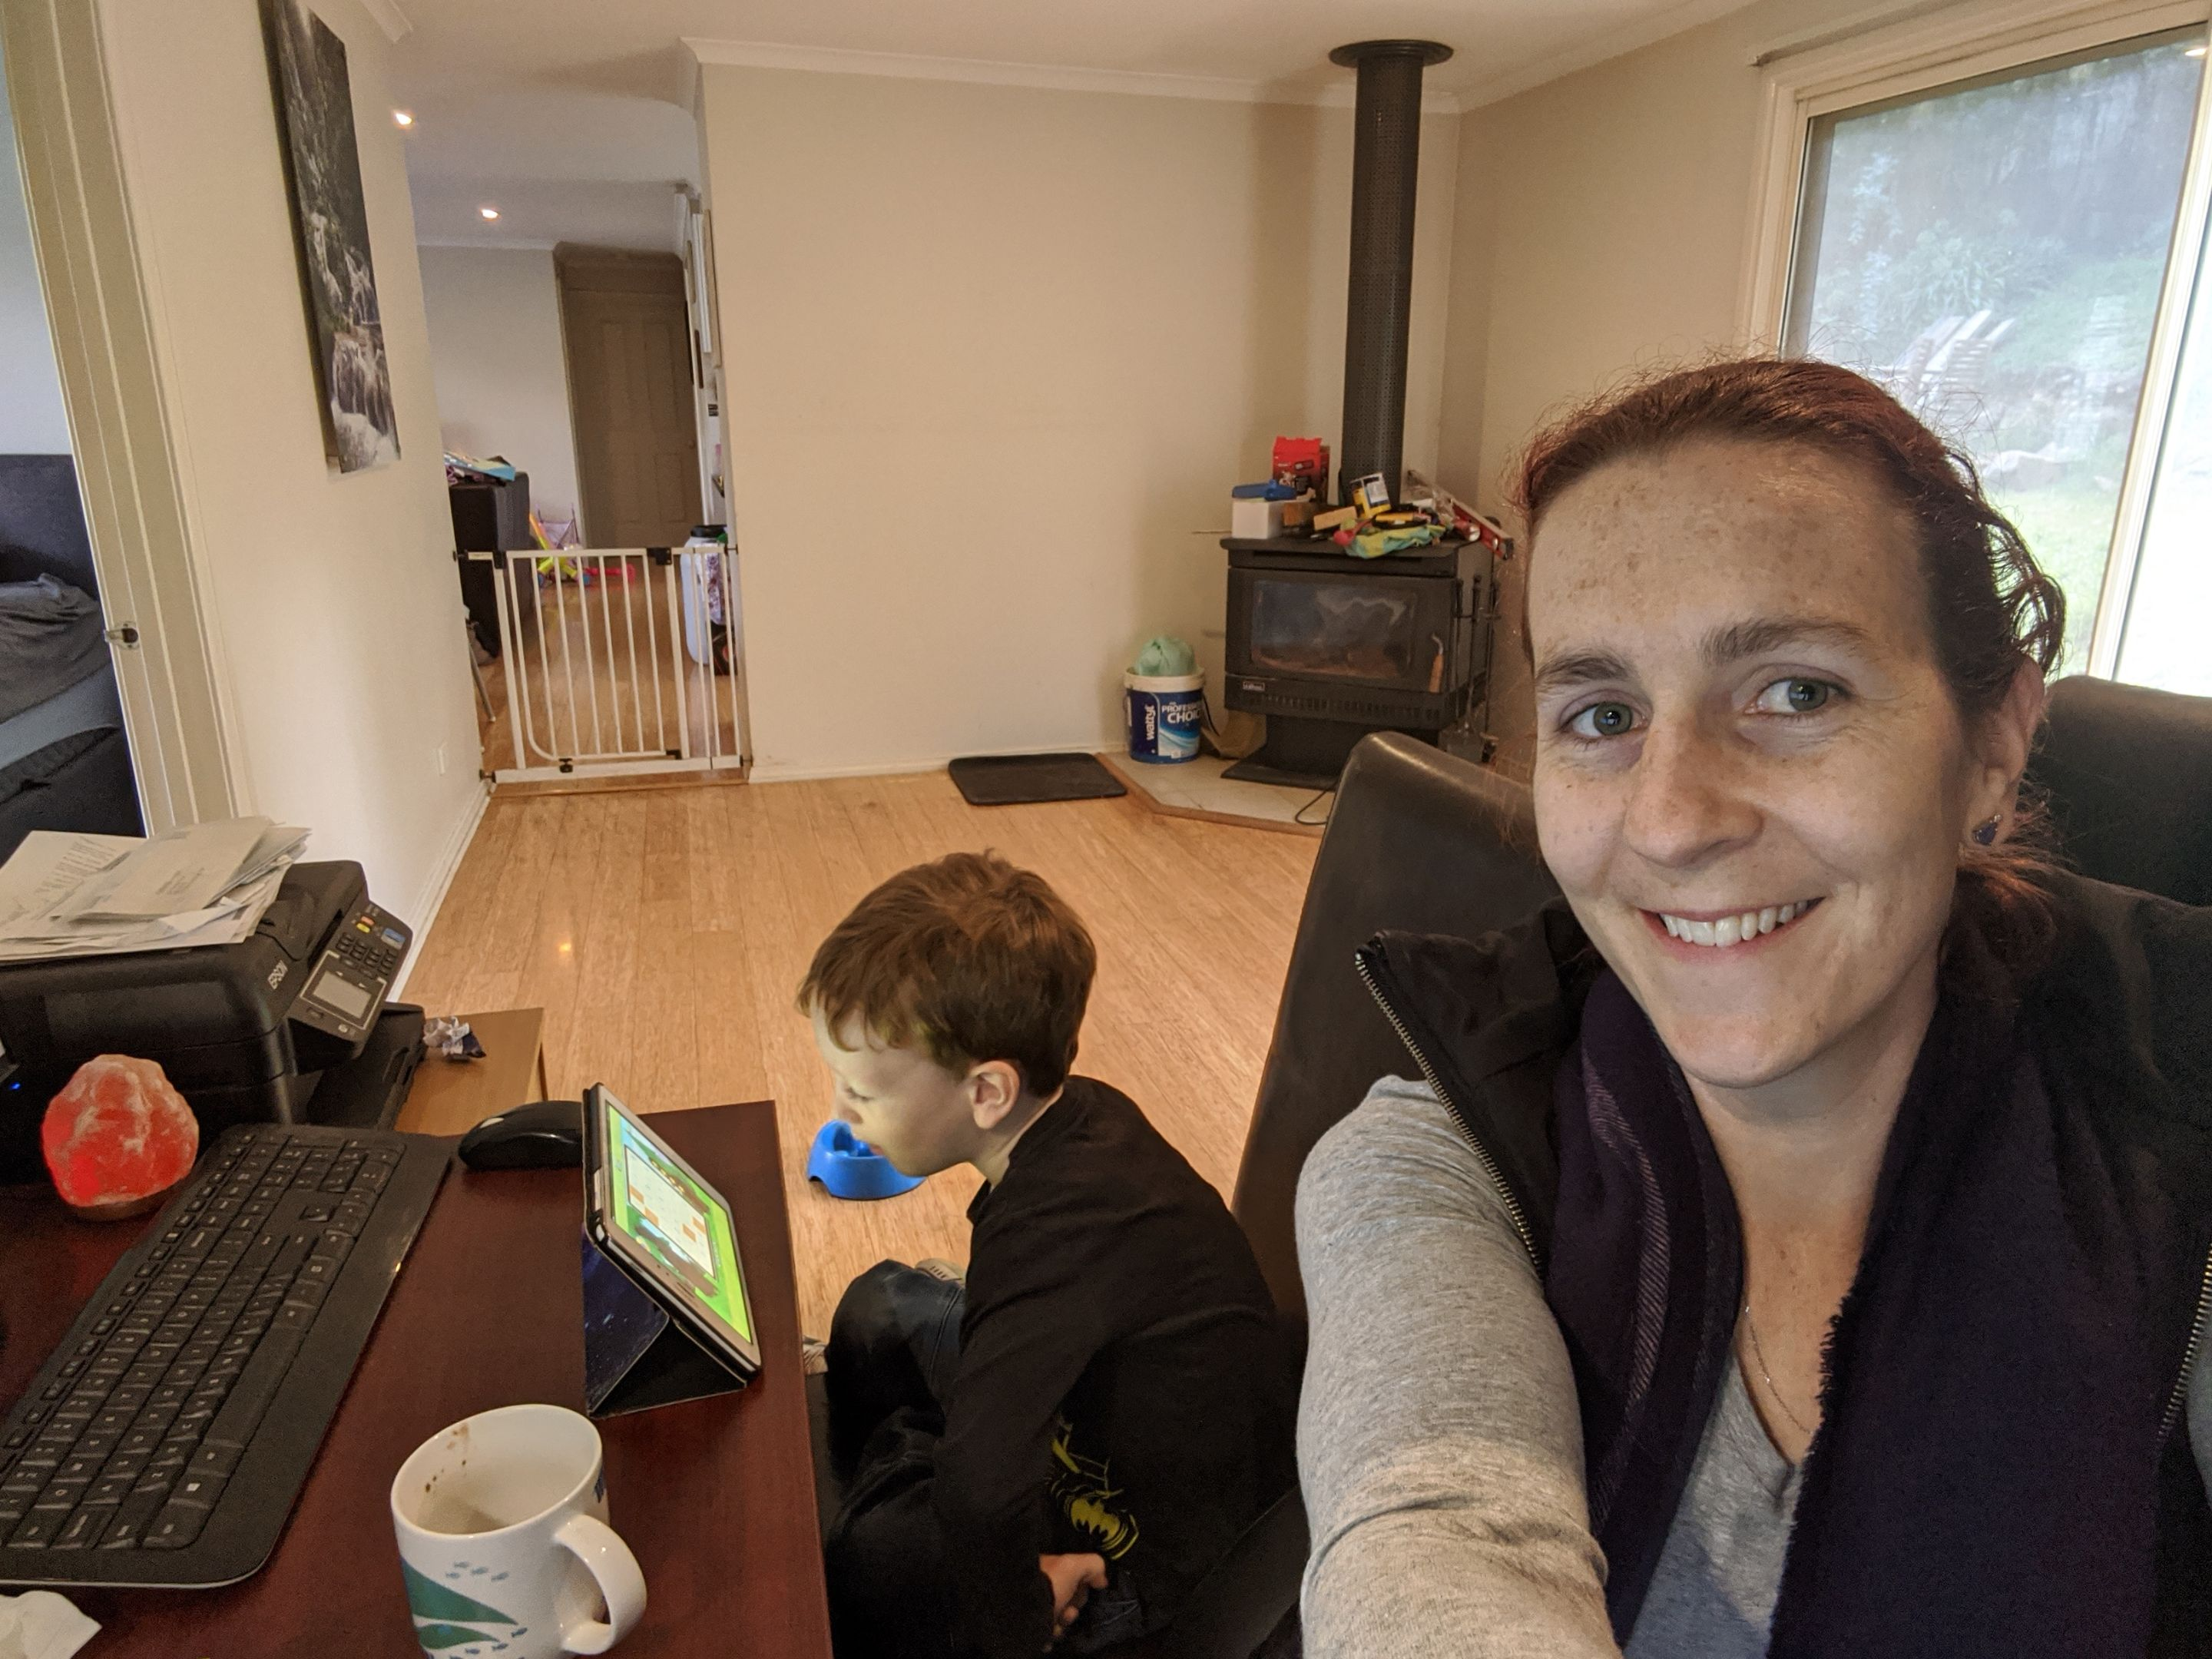 Diploma of Nursing Coordinator, Rachel Gilder working from home with her child pictured beside her looking at a tablet